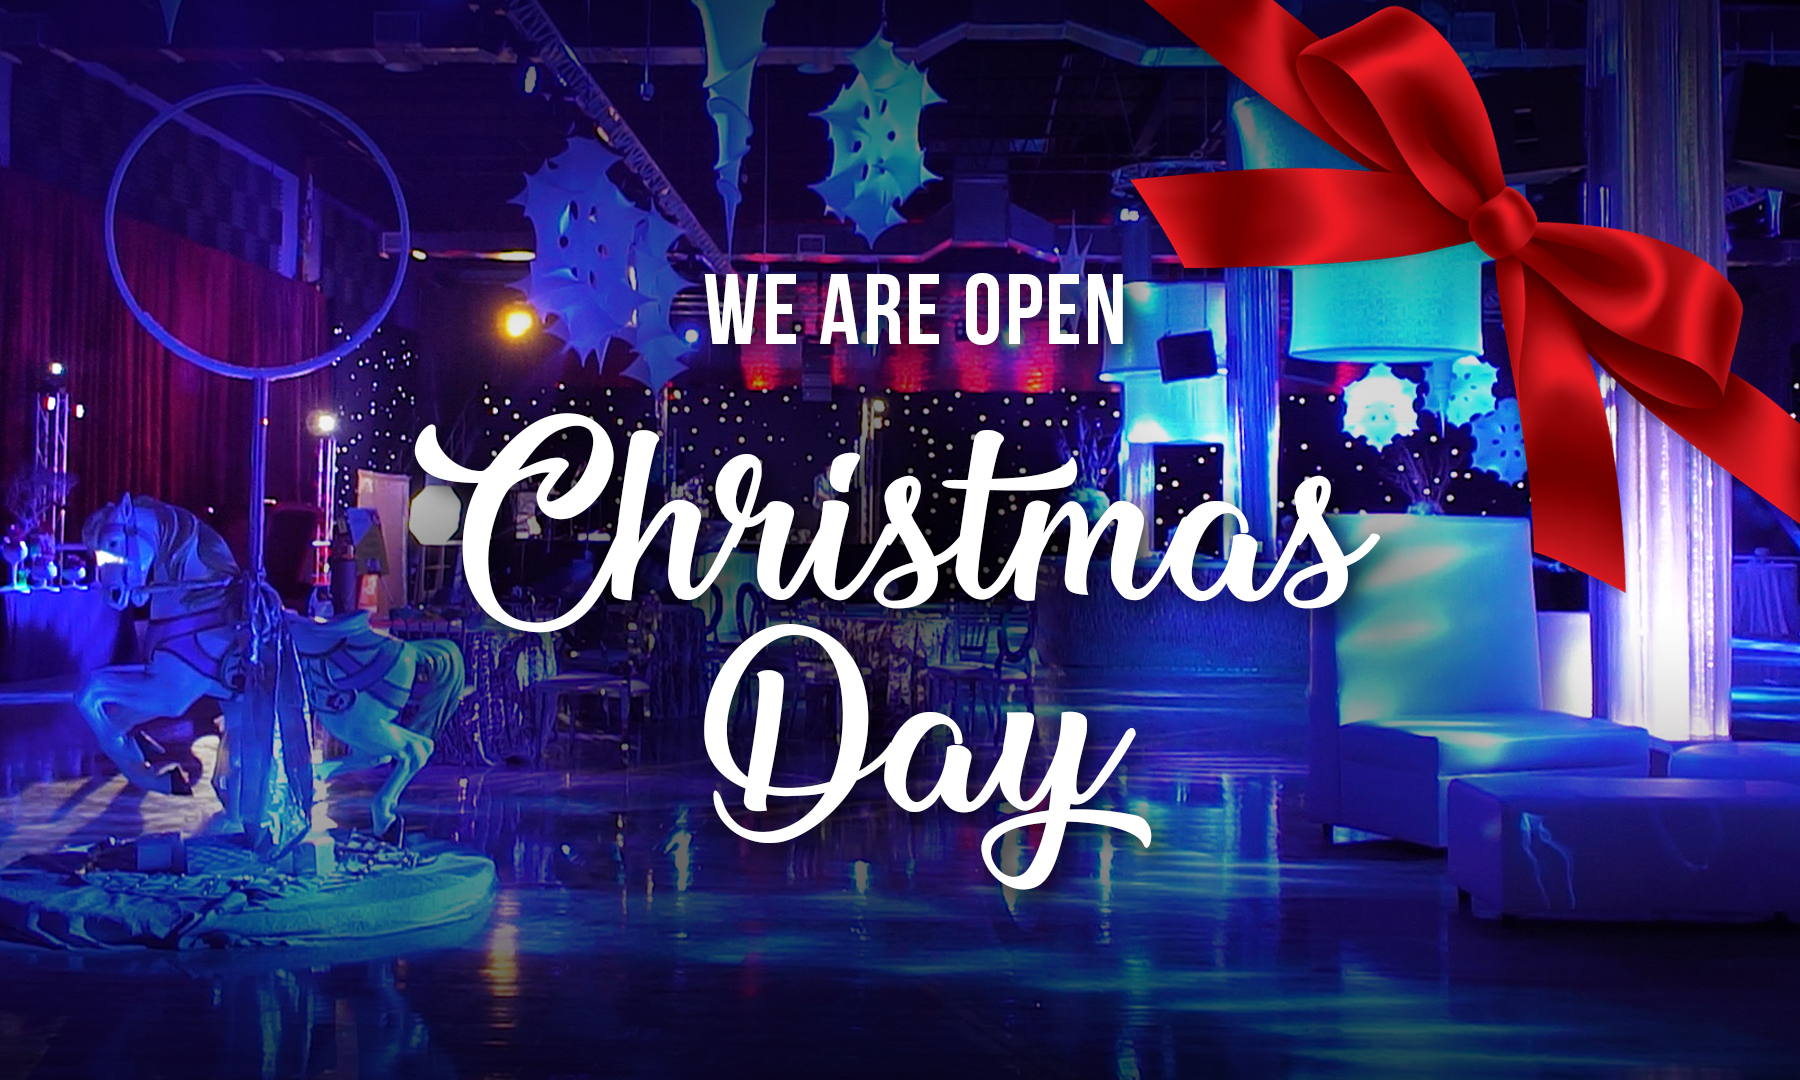 Open Christmas Day.Open Christmas Day Xtreme Action Park Corporate